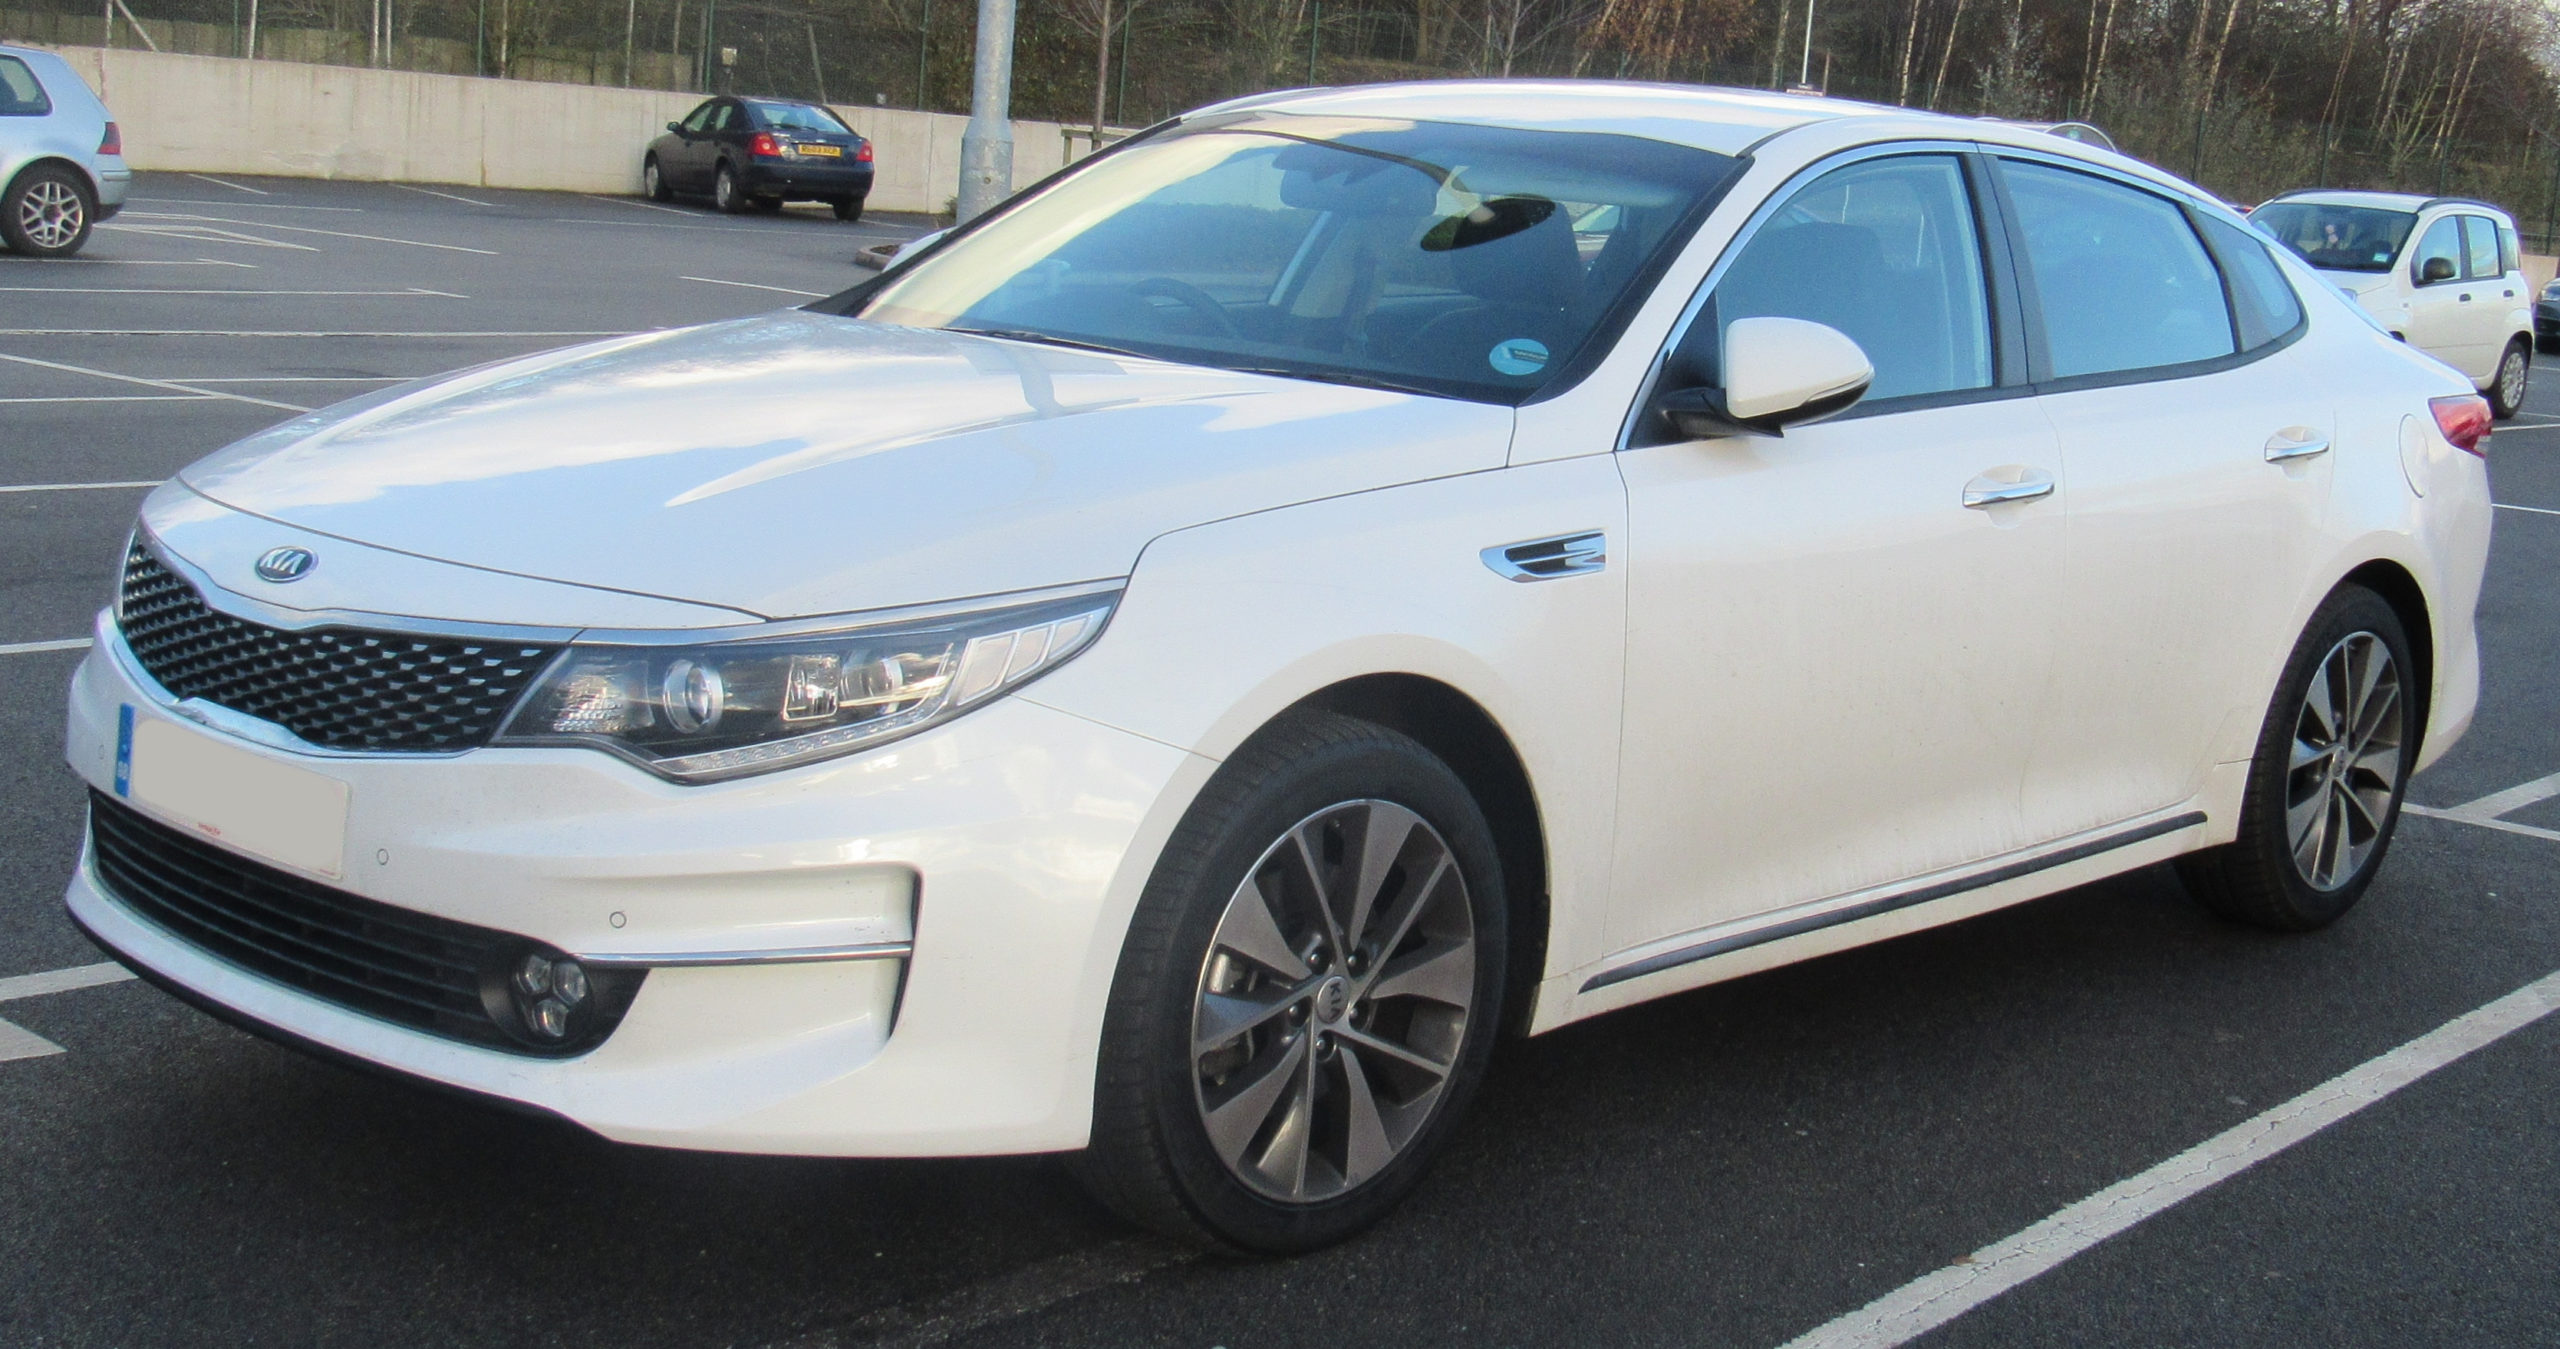 Kia Optima - Wikipedia - 2022 Kia Optima White Concept, Rumor, Release Date